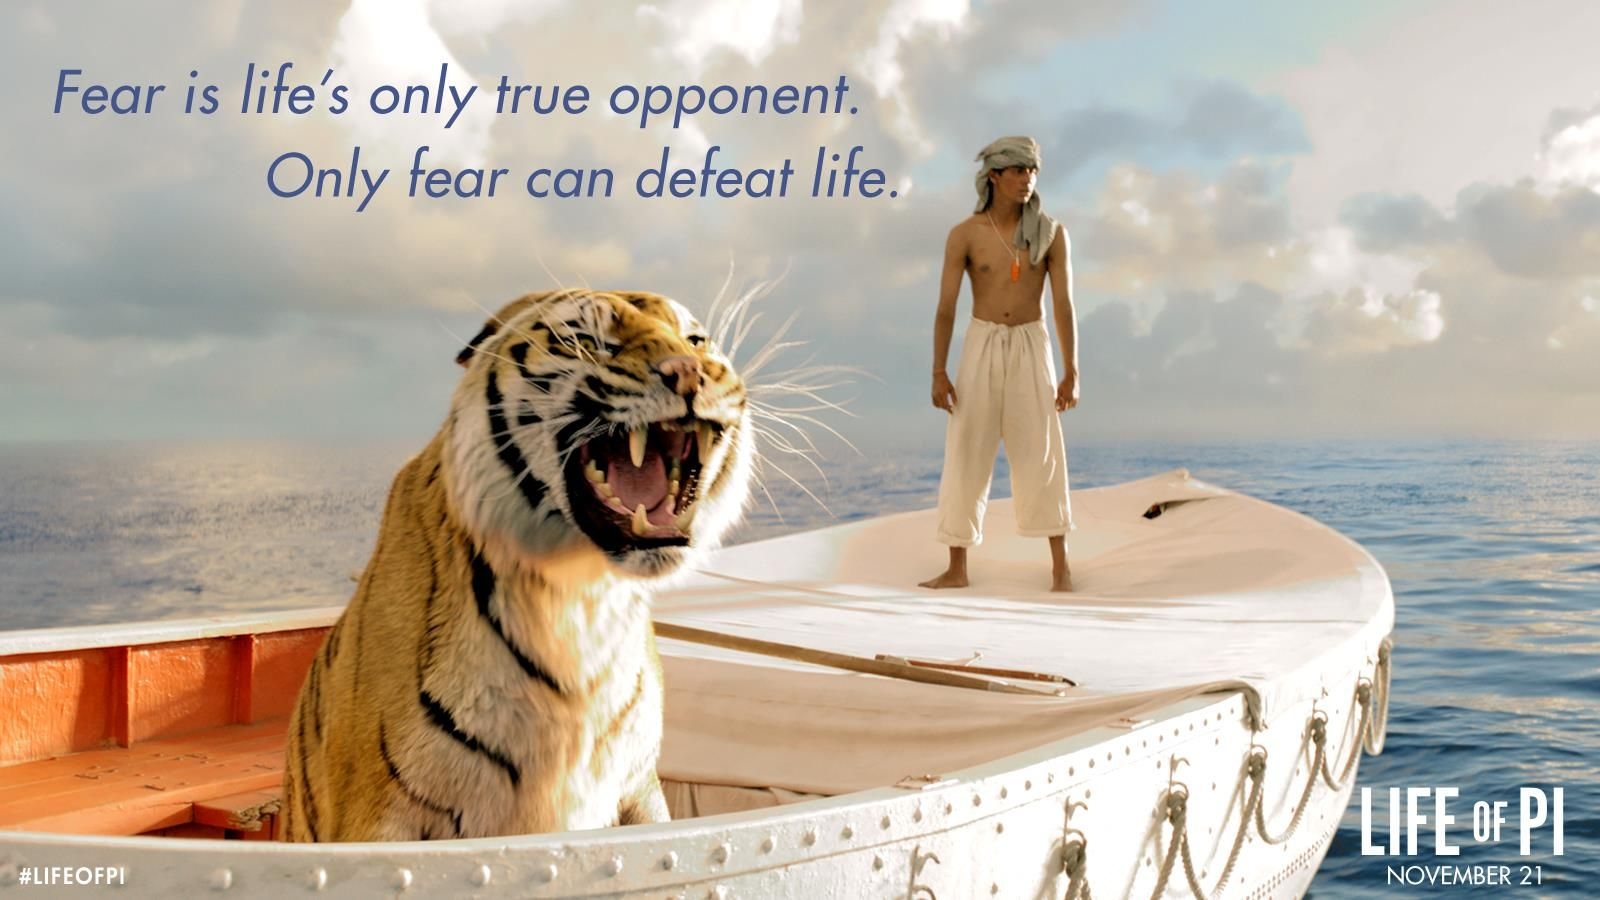 Famous Life Of Pi Quotes Quotesgram